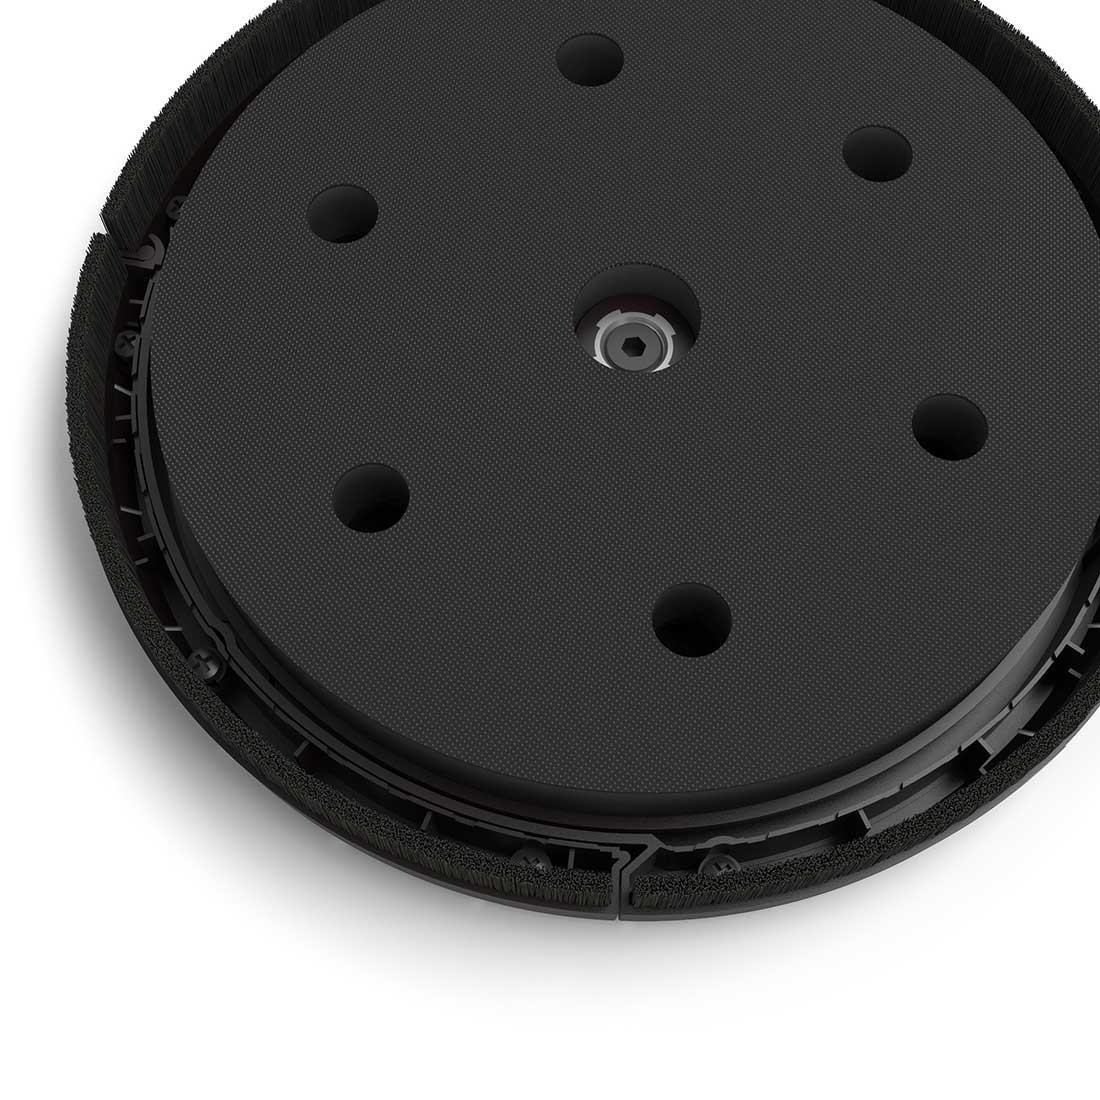 MENZER TBS 225 PRO  perforated sanding disc